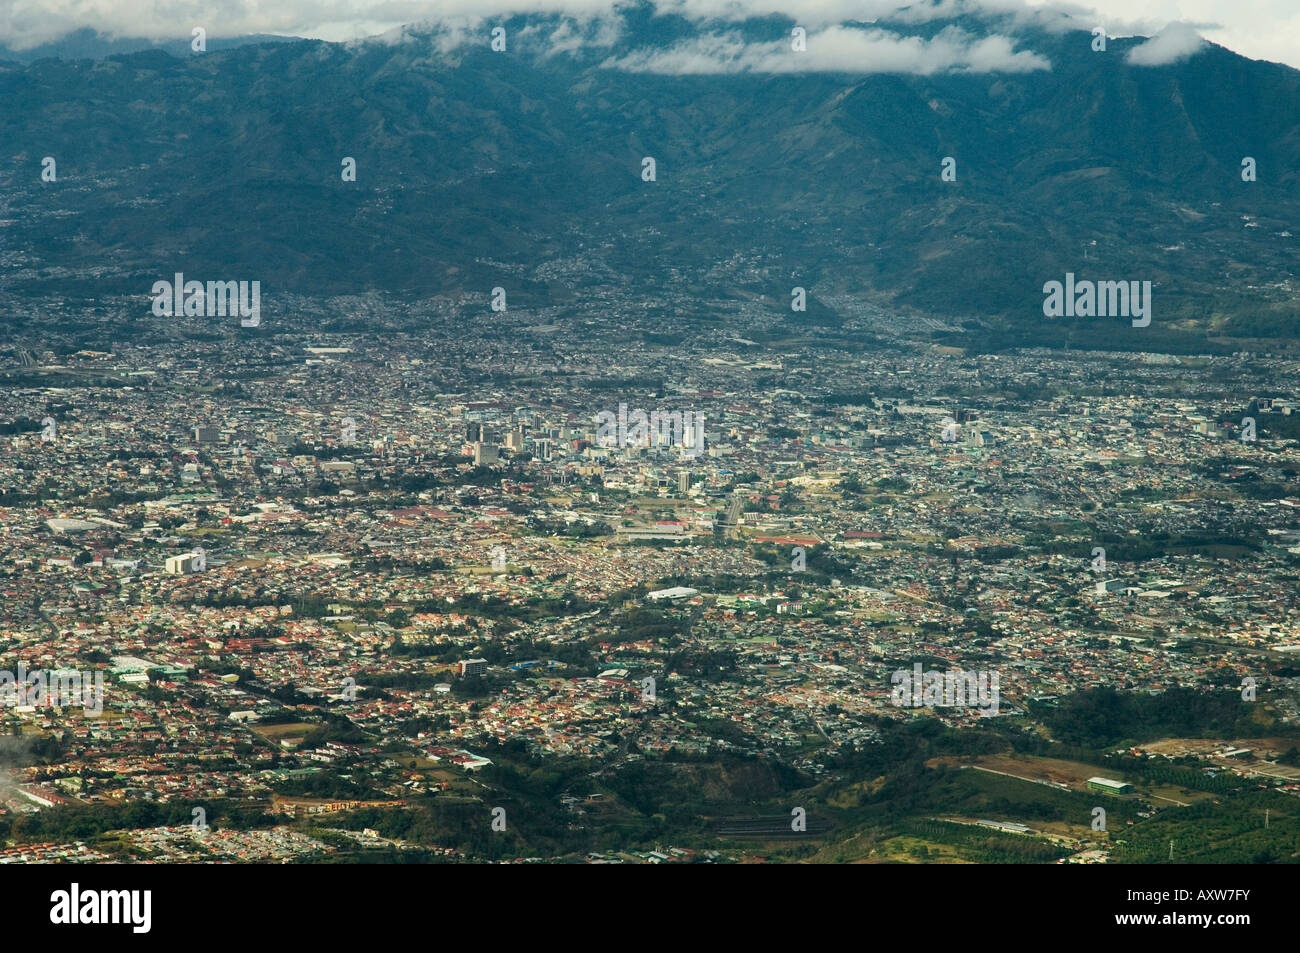 Approaching San Jose from the air, Costa Rica - Stock Image